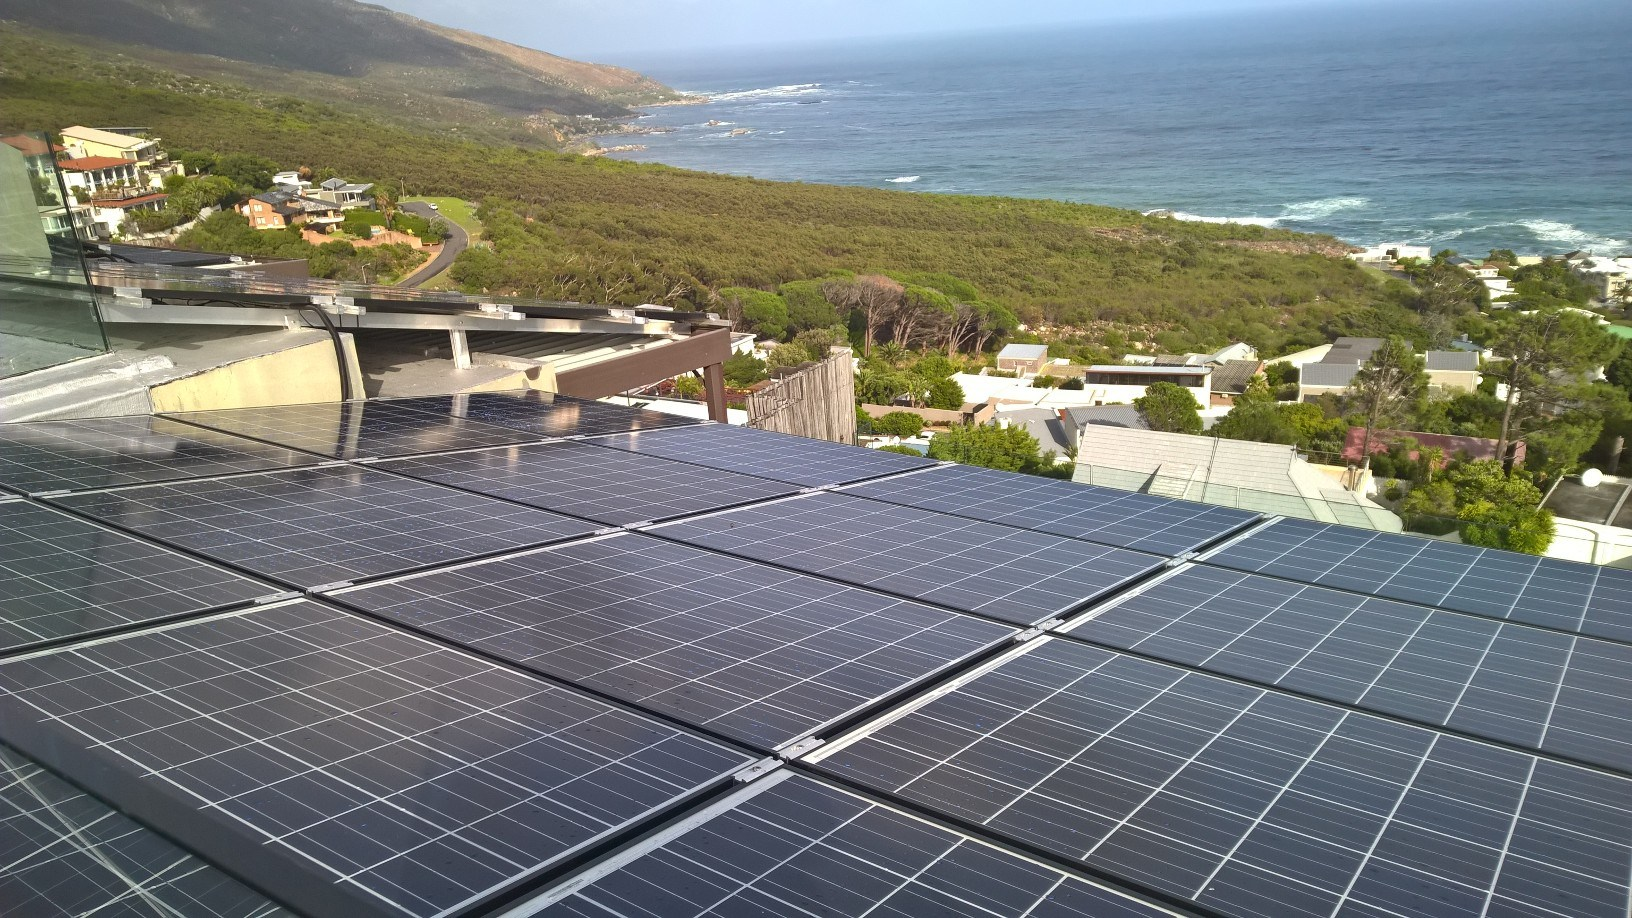 After working in the South African market with partner maxx solar energy since 2014, IBC Solar has established its own regional South African company. Source: IBC Solar